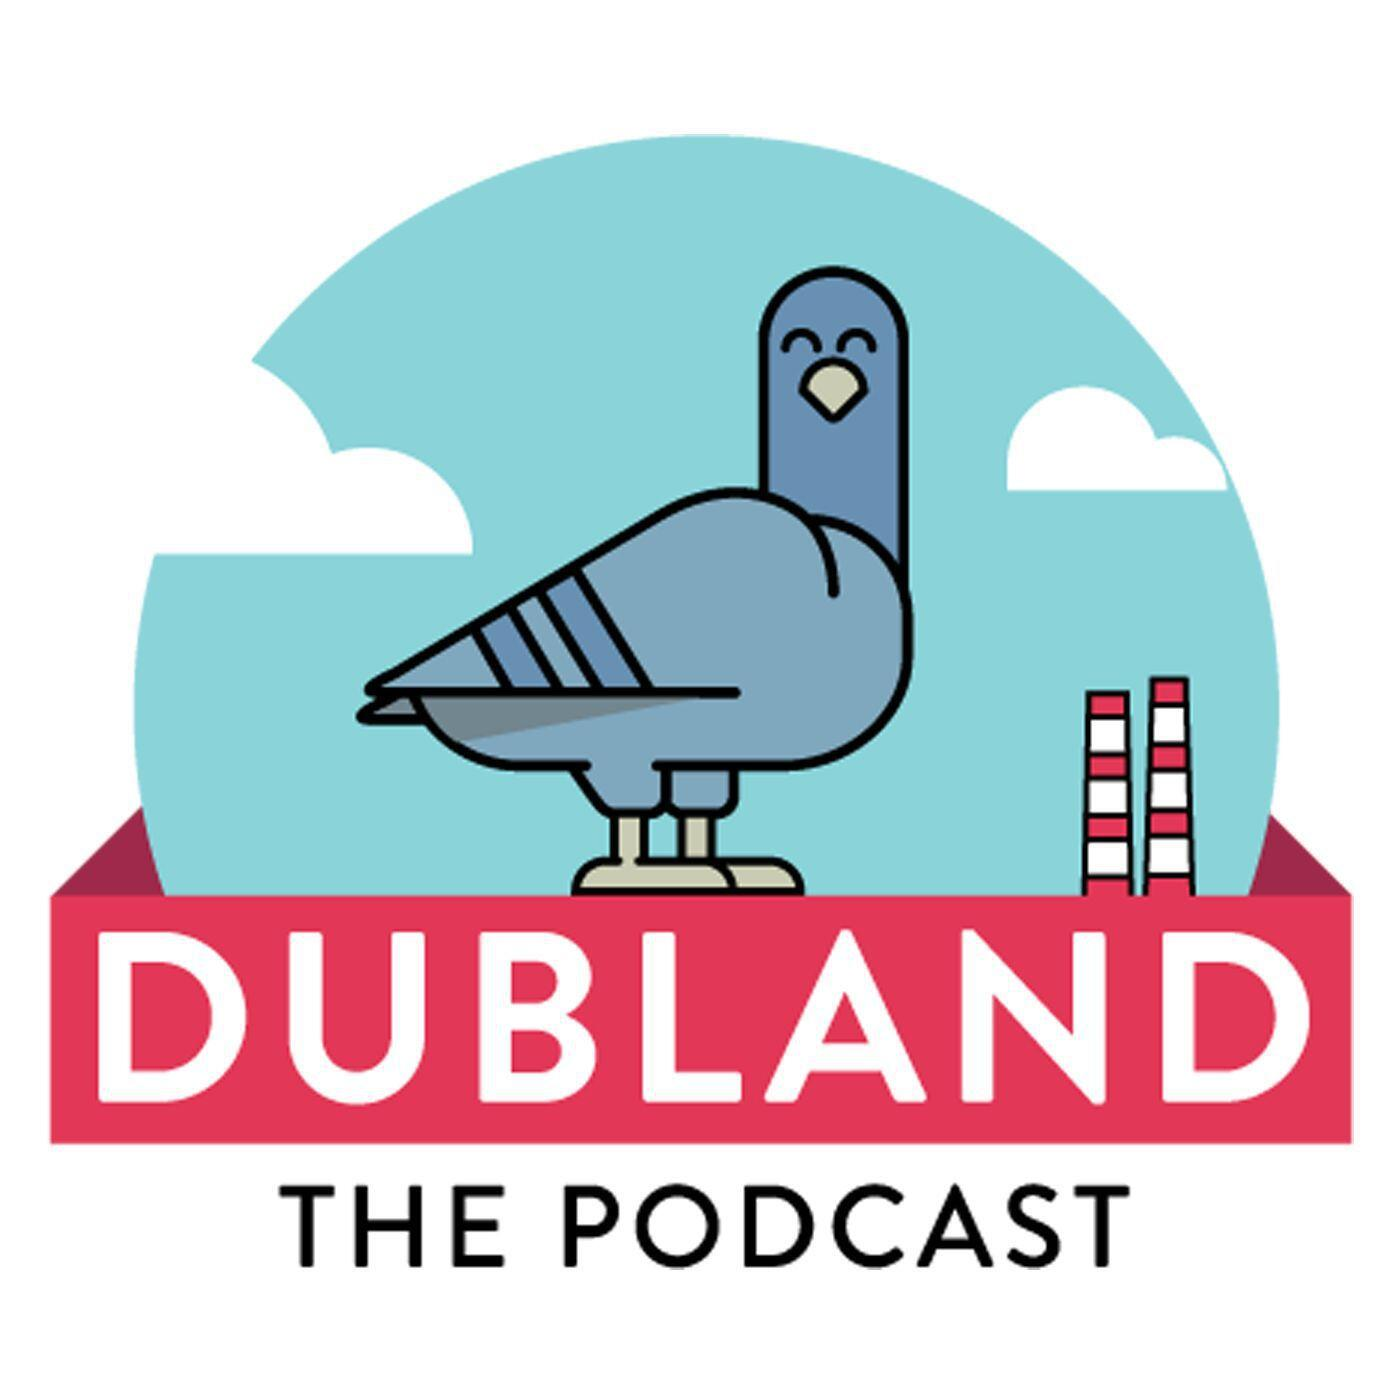 DUBLAND THE PODCAST EPISODE 15